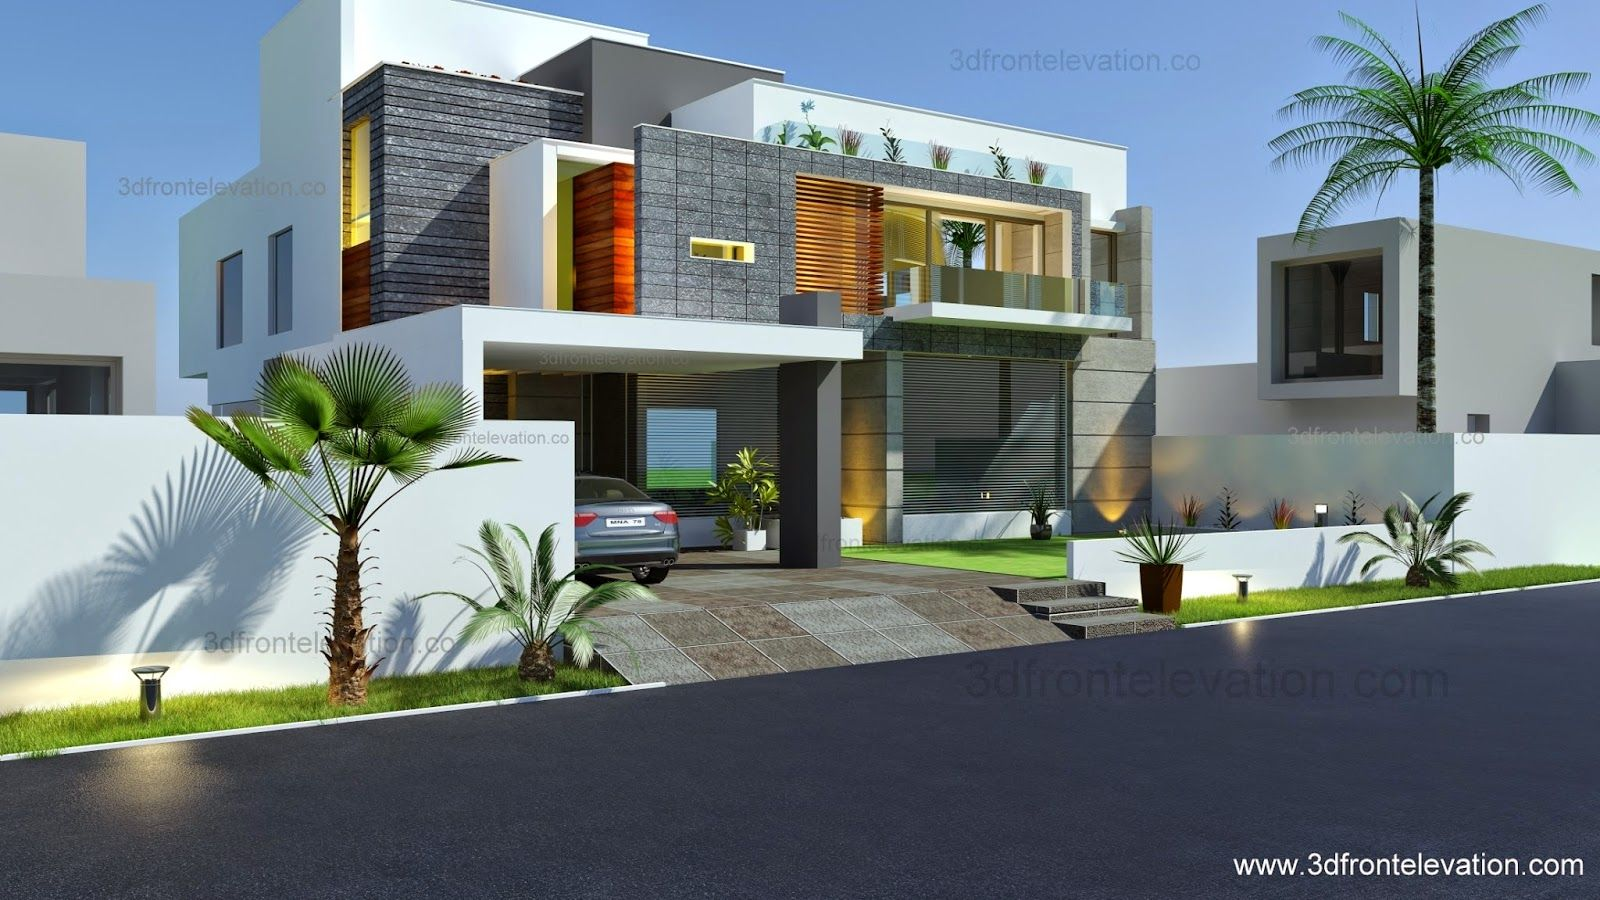 3d front elevation com beautiful modern contemporary house elevation 2015 house plan design